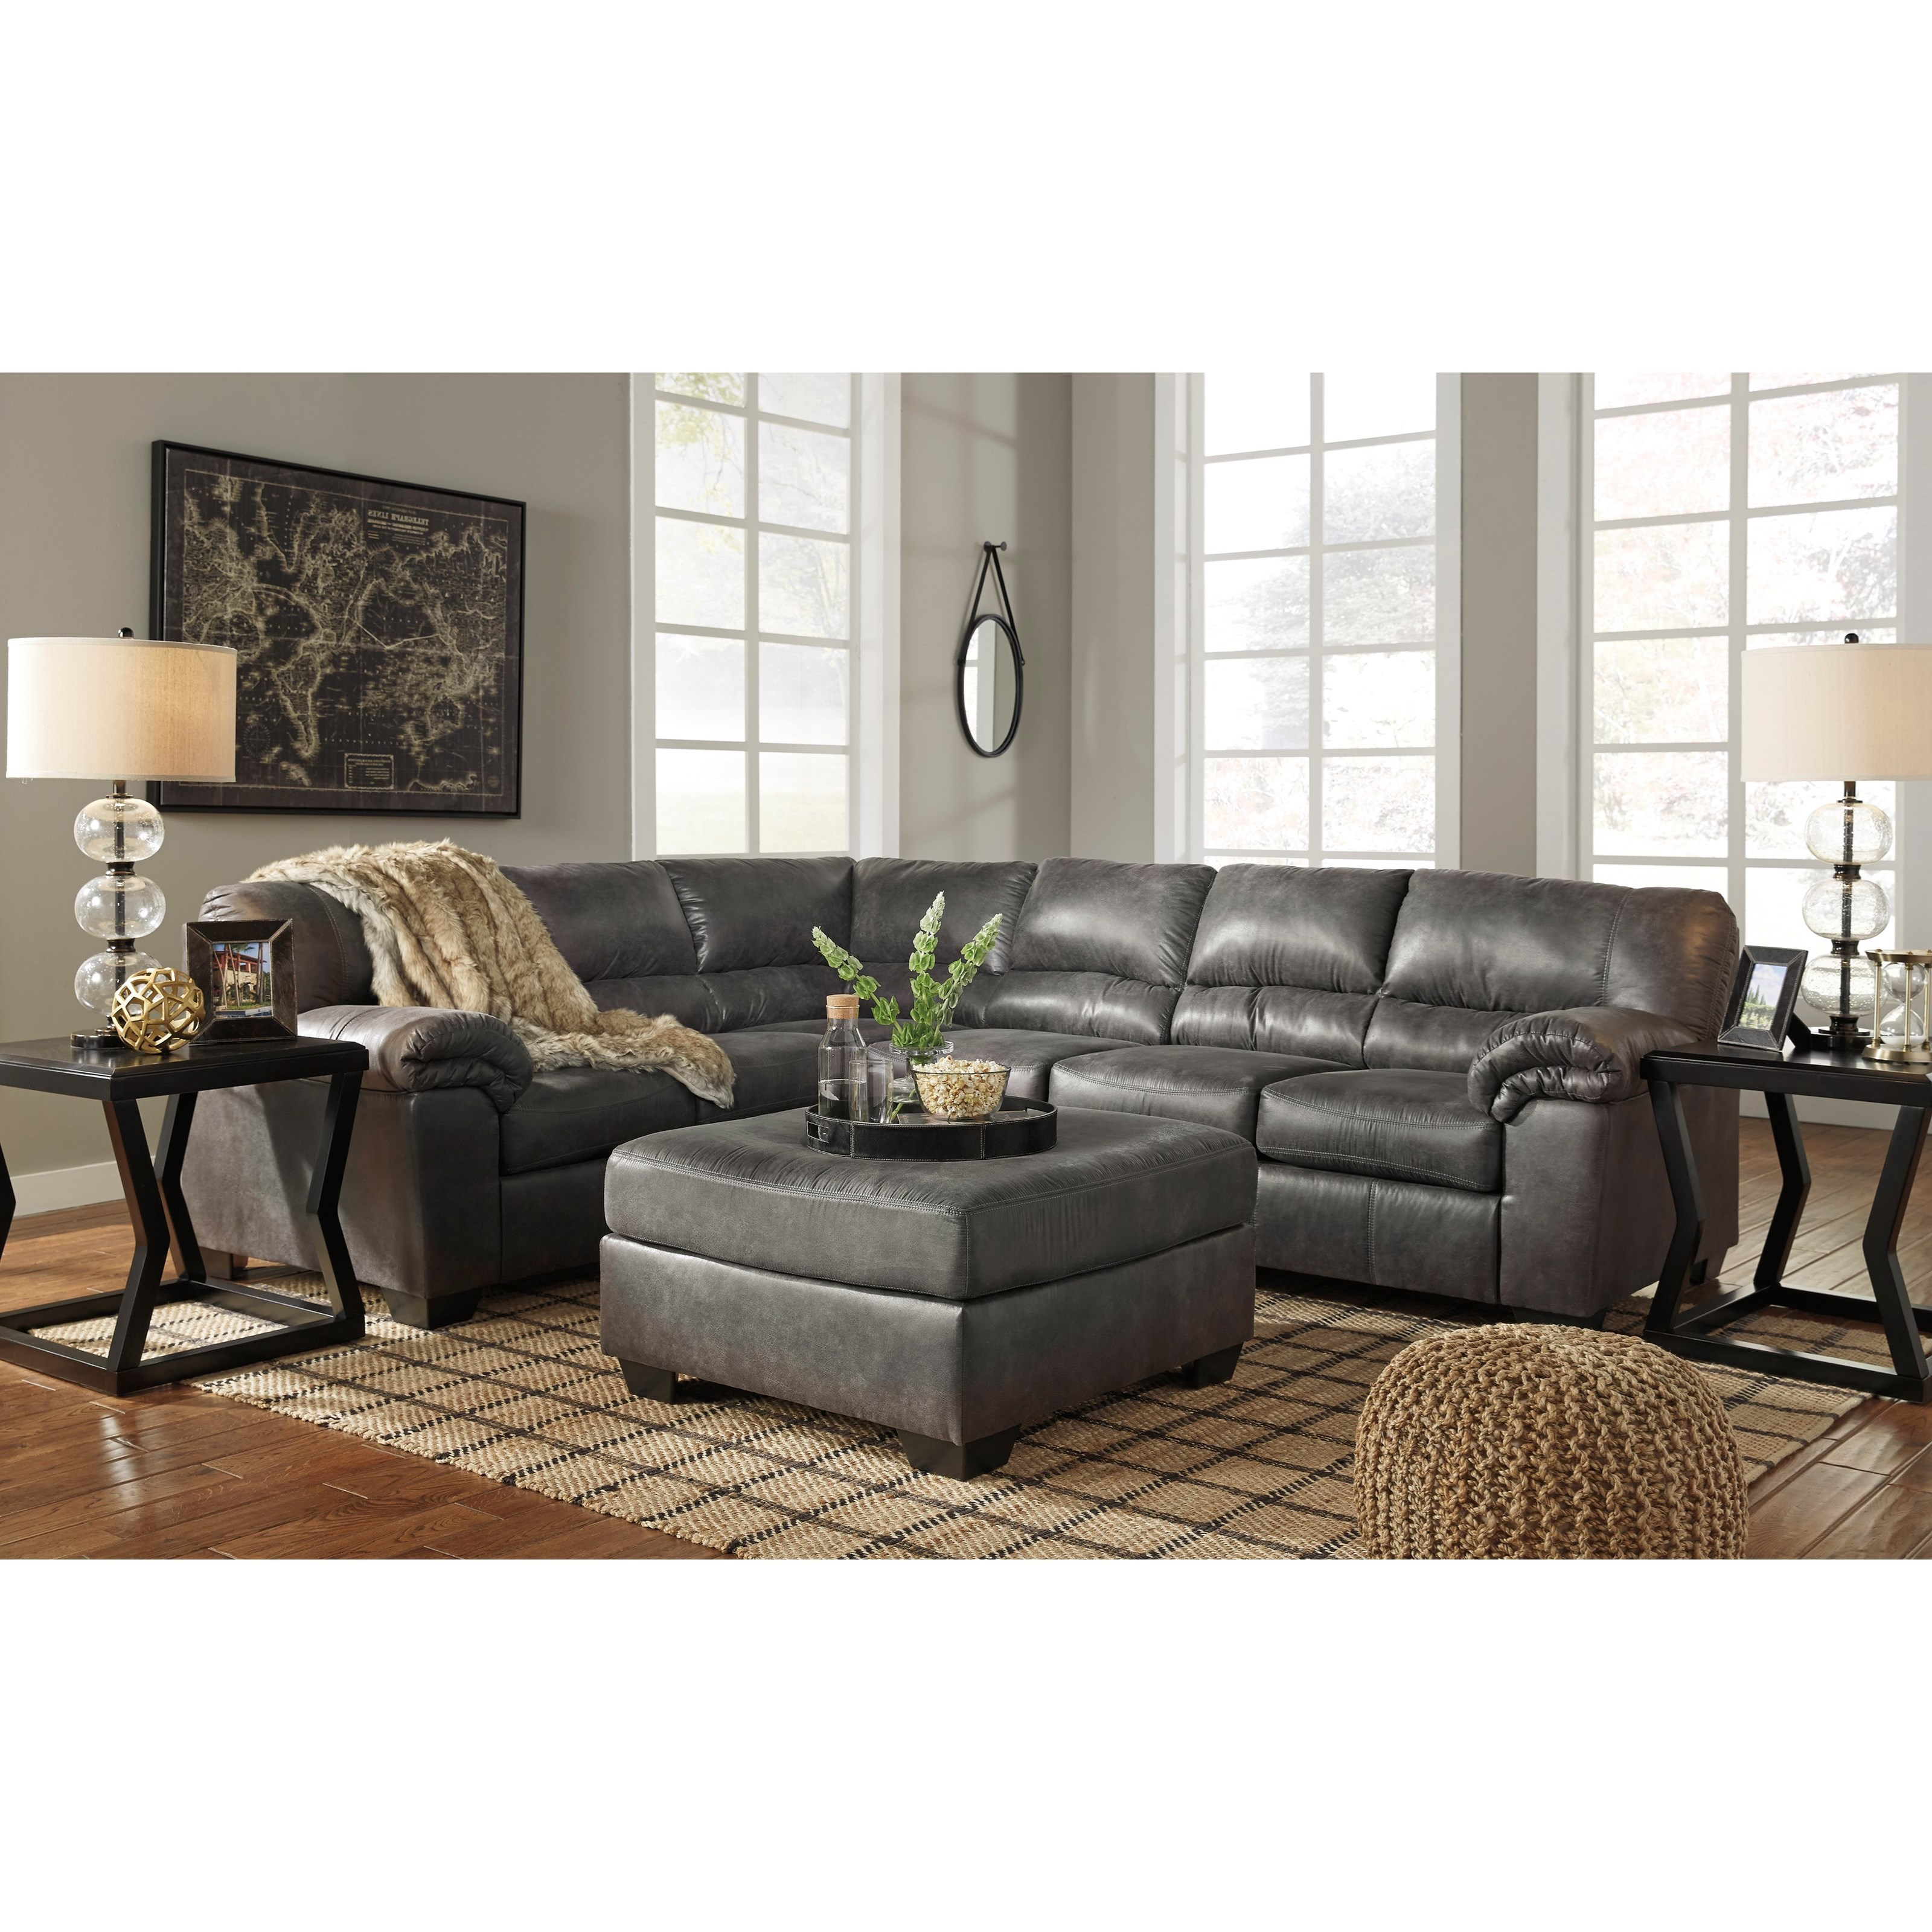 Signature Design By Ashley Bladen 3-Piece Faux Leather